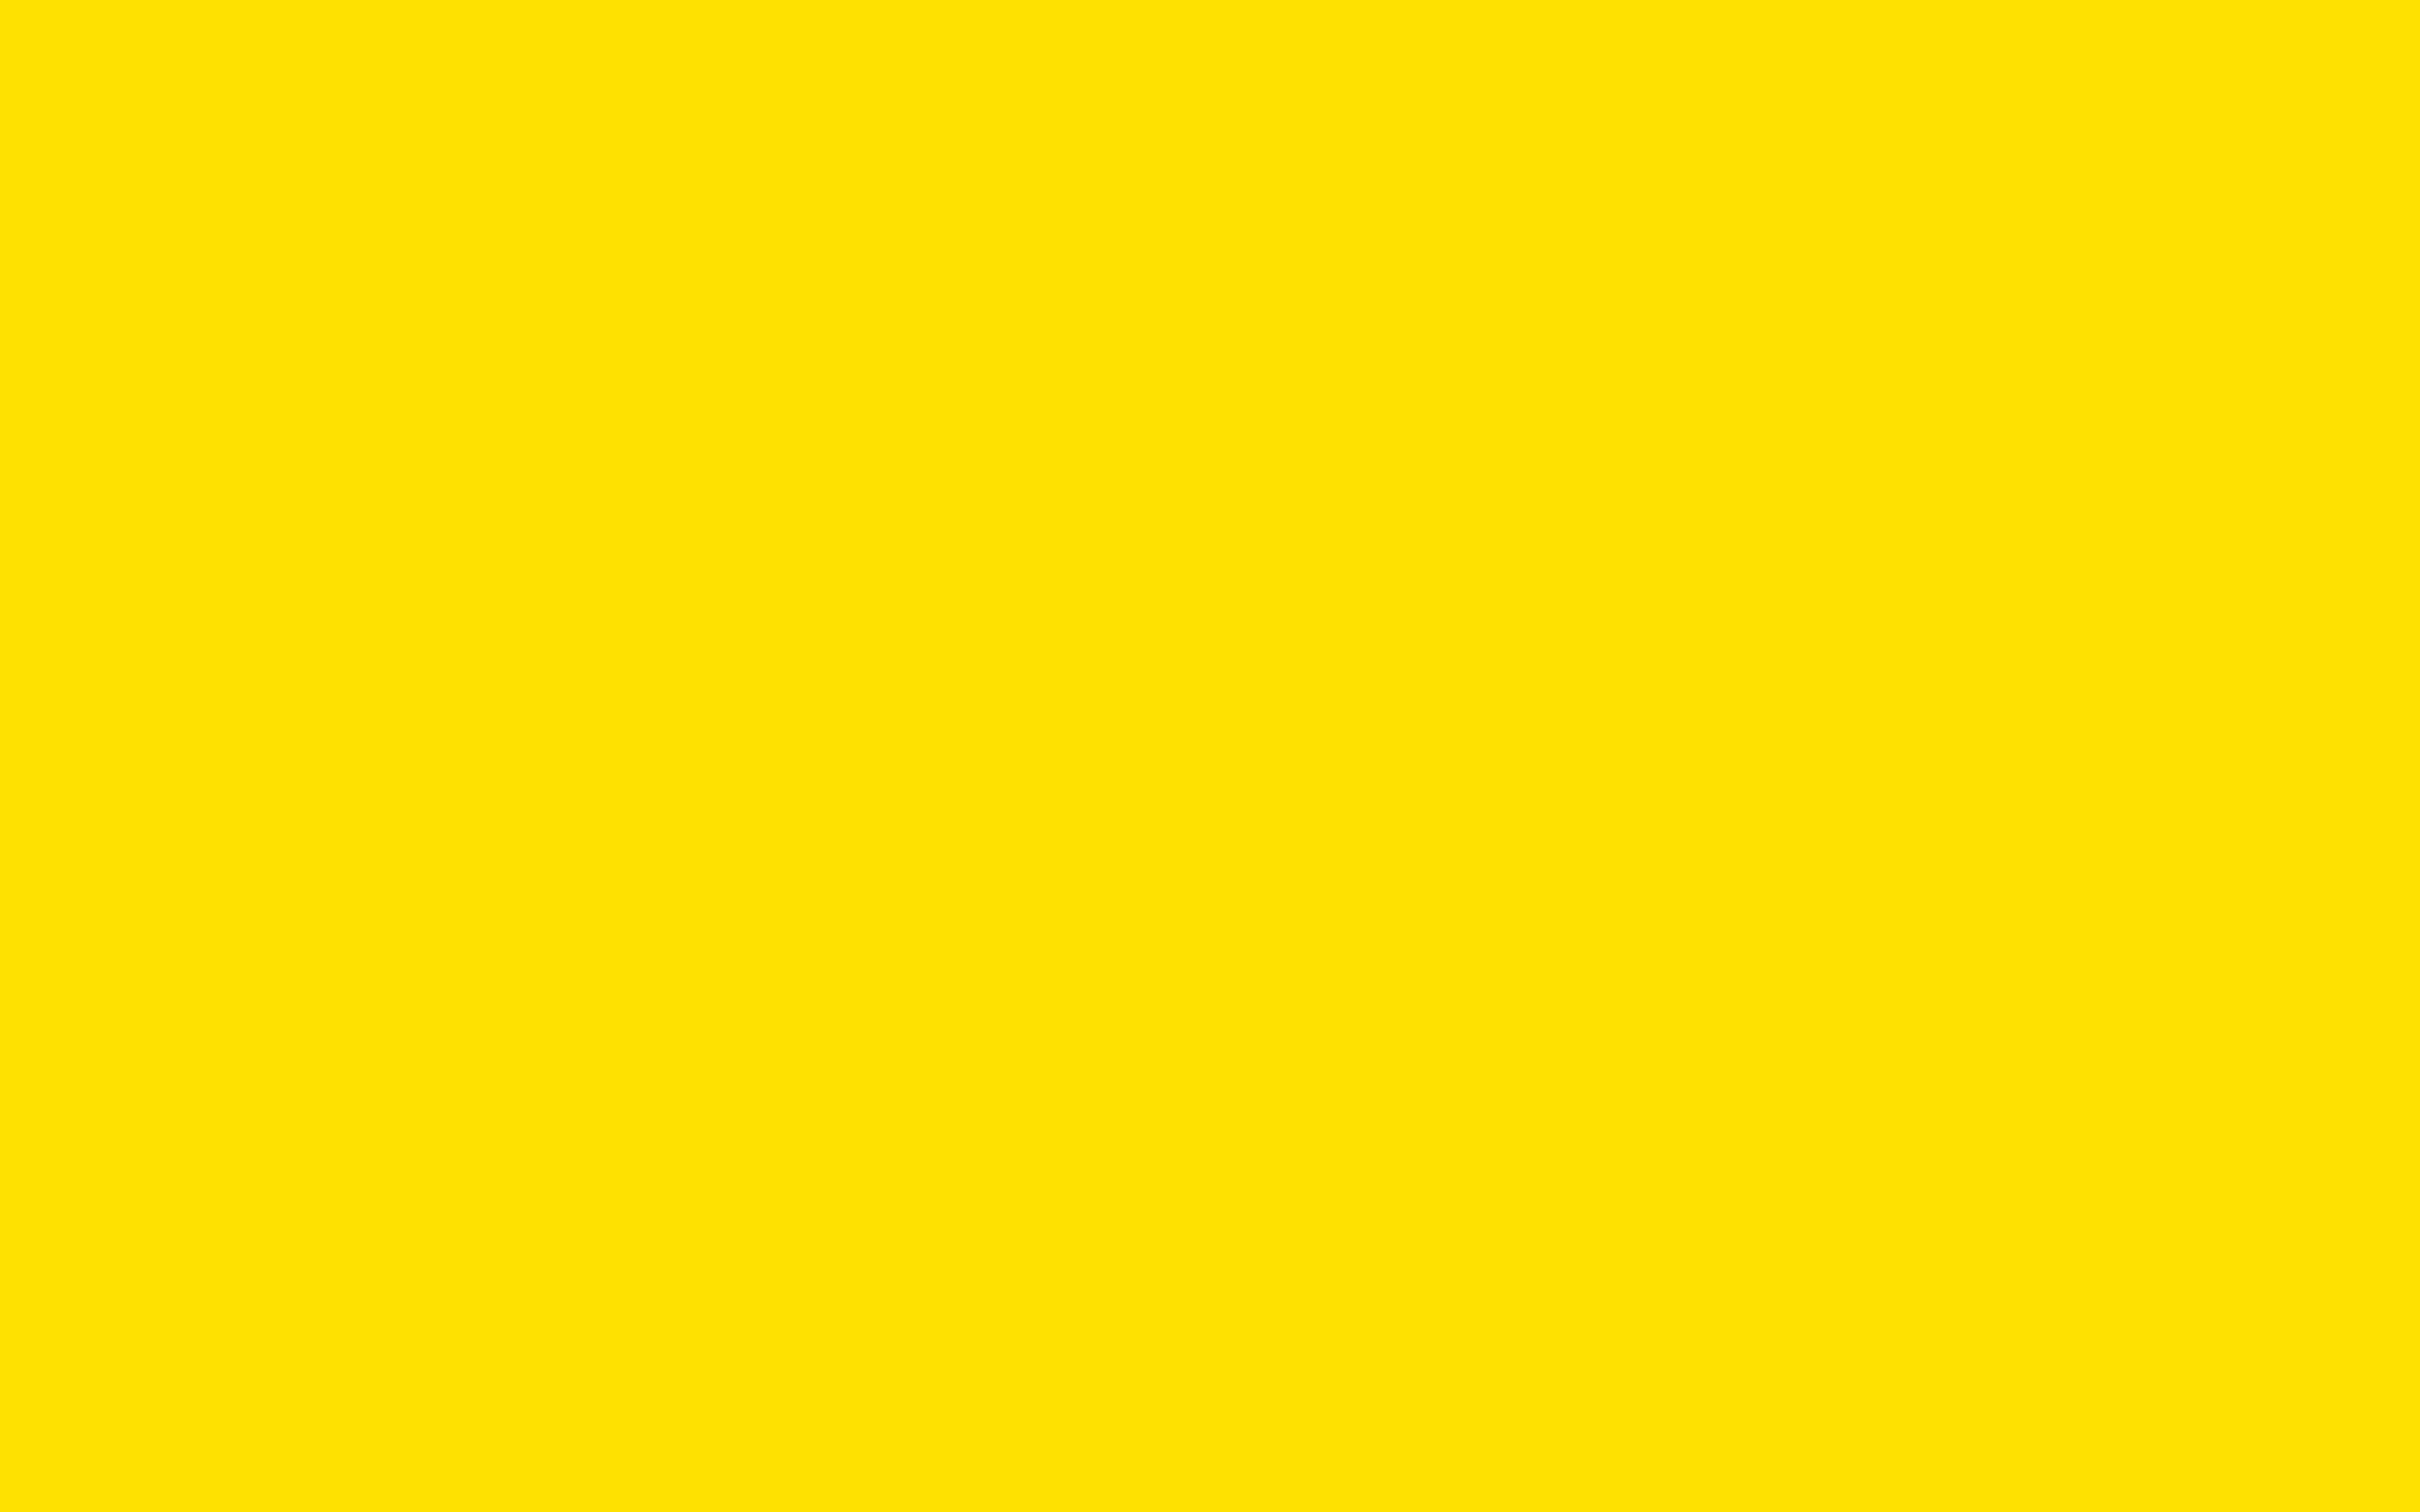 2560x1600 Yellow Pantone Solid Color Background